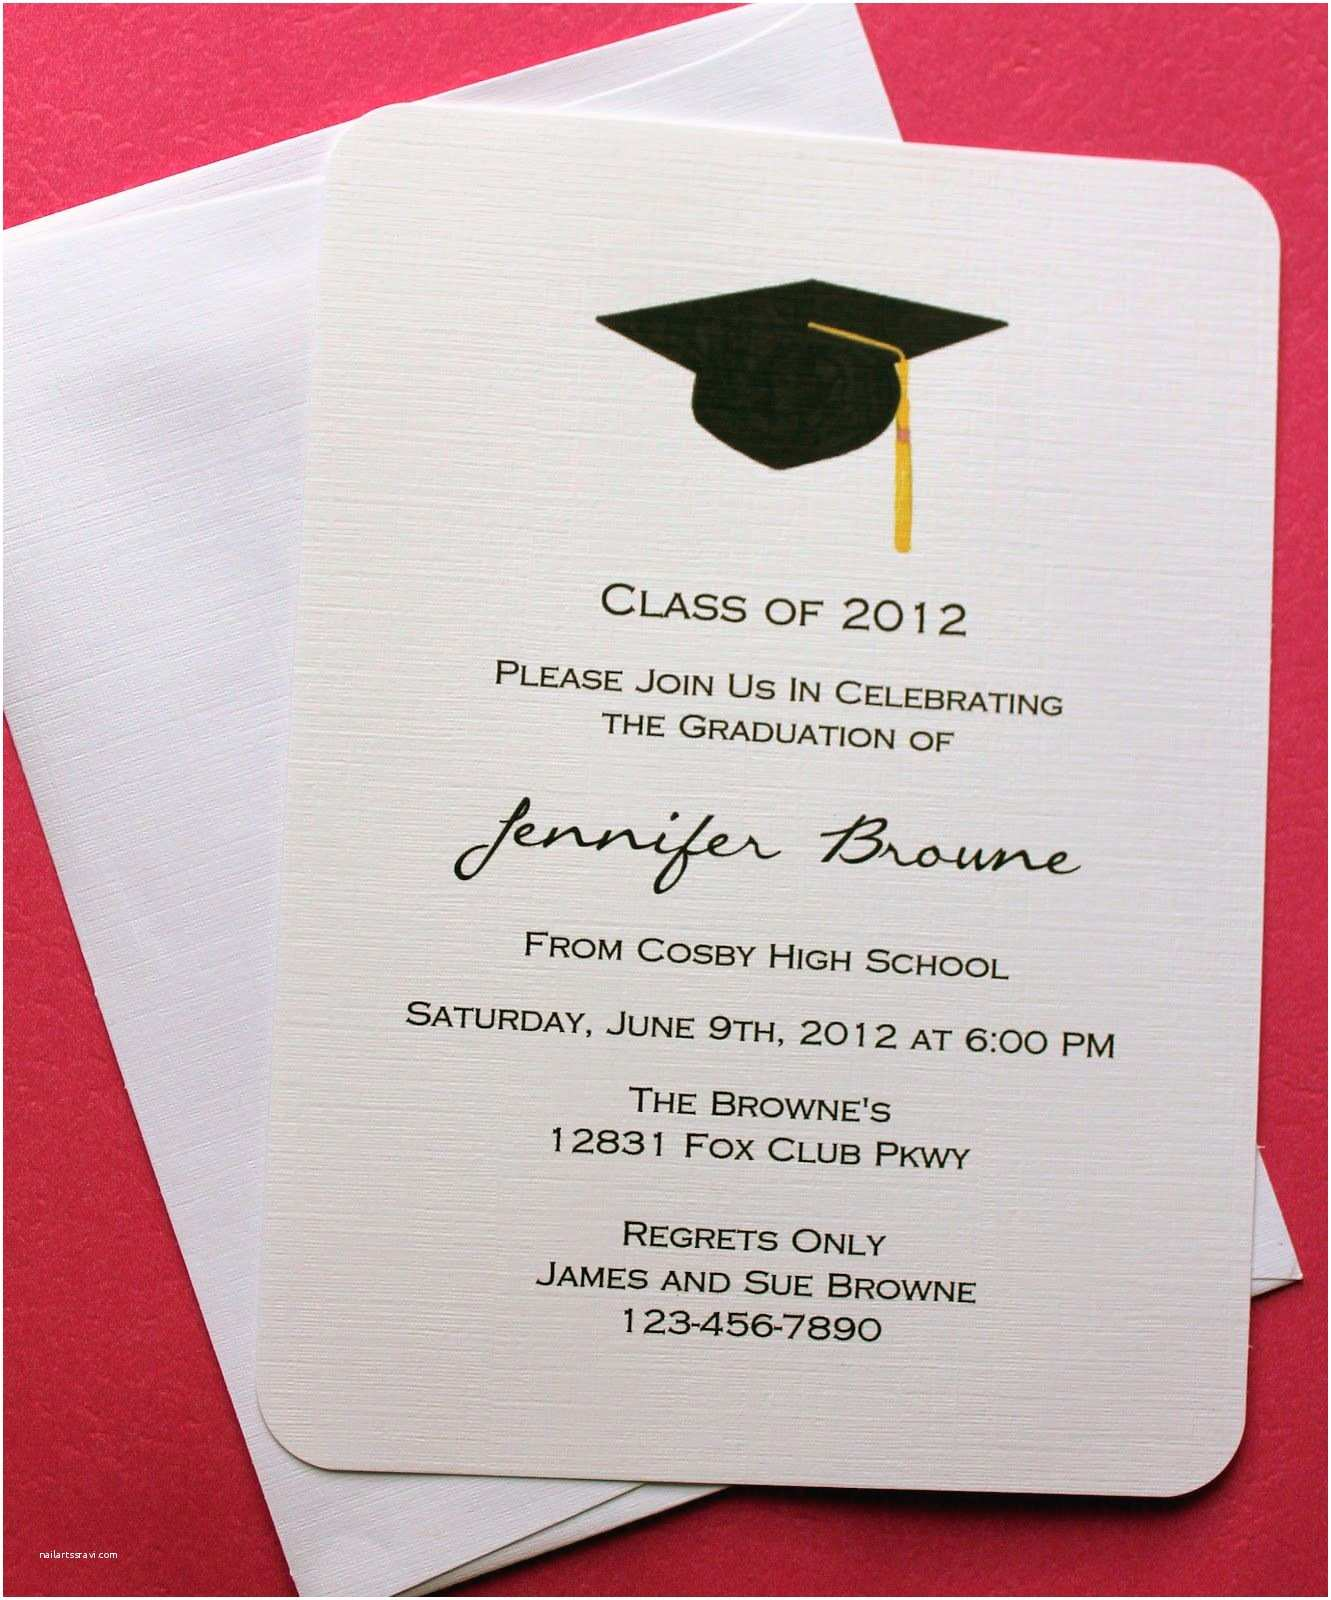 Photo Graduation Invitations Graduation Invitation Template Graduation Invitation